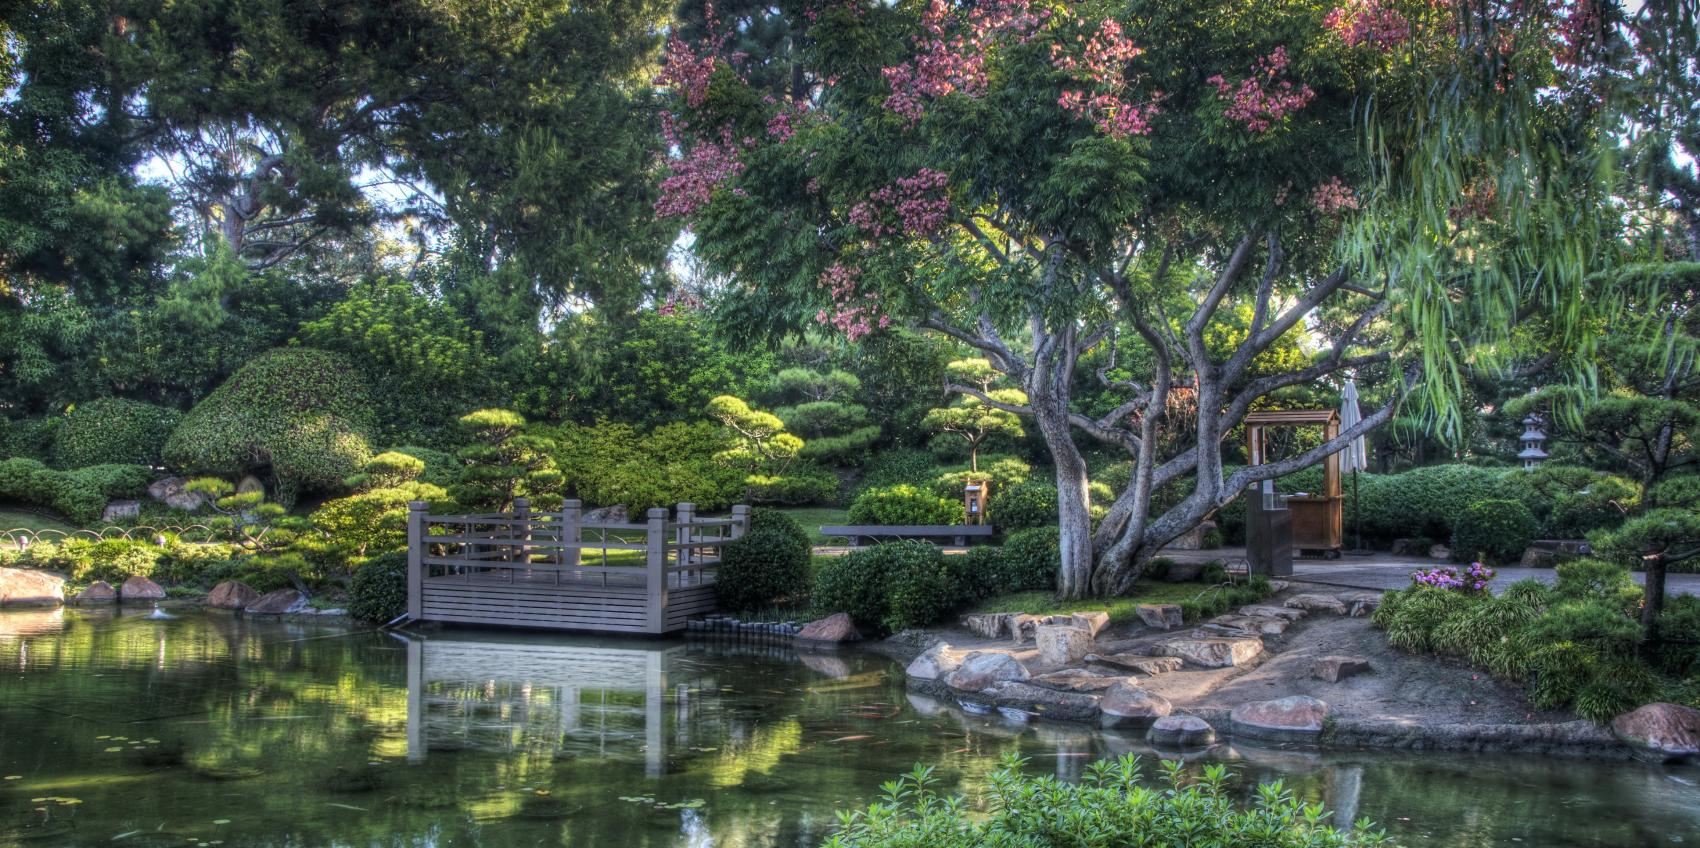 Earl Burns Miller Japanese Garden | American Public Gardens Association